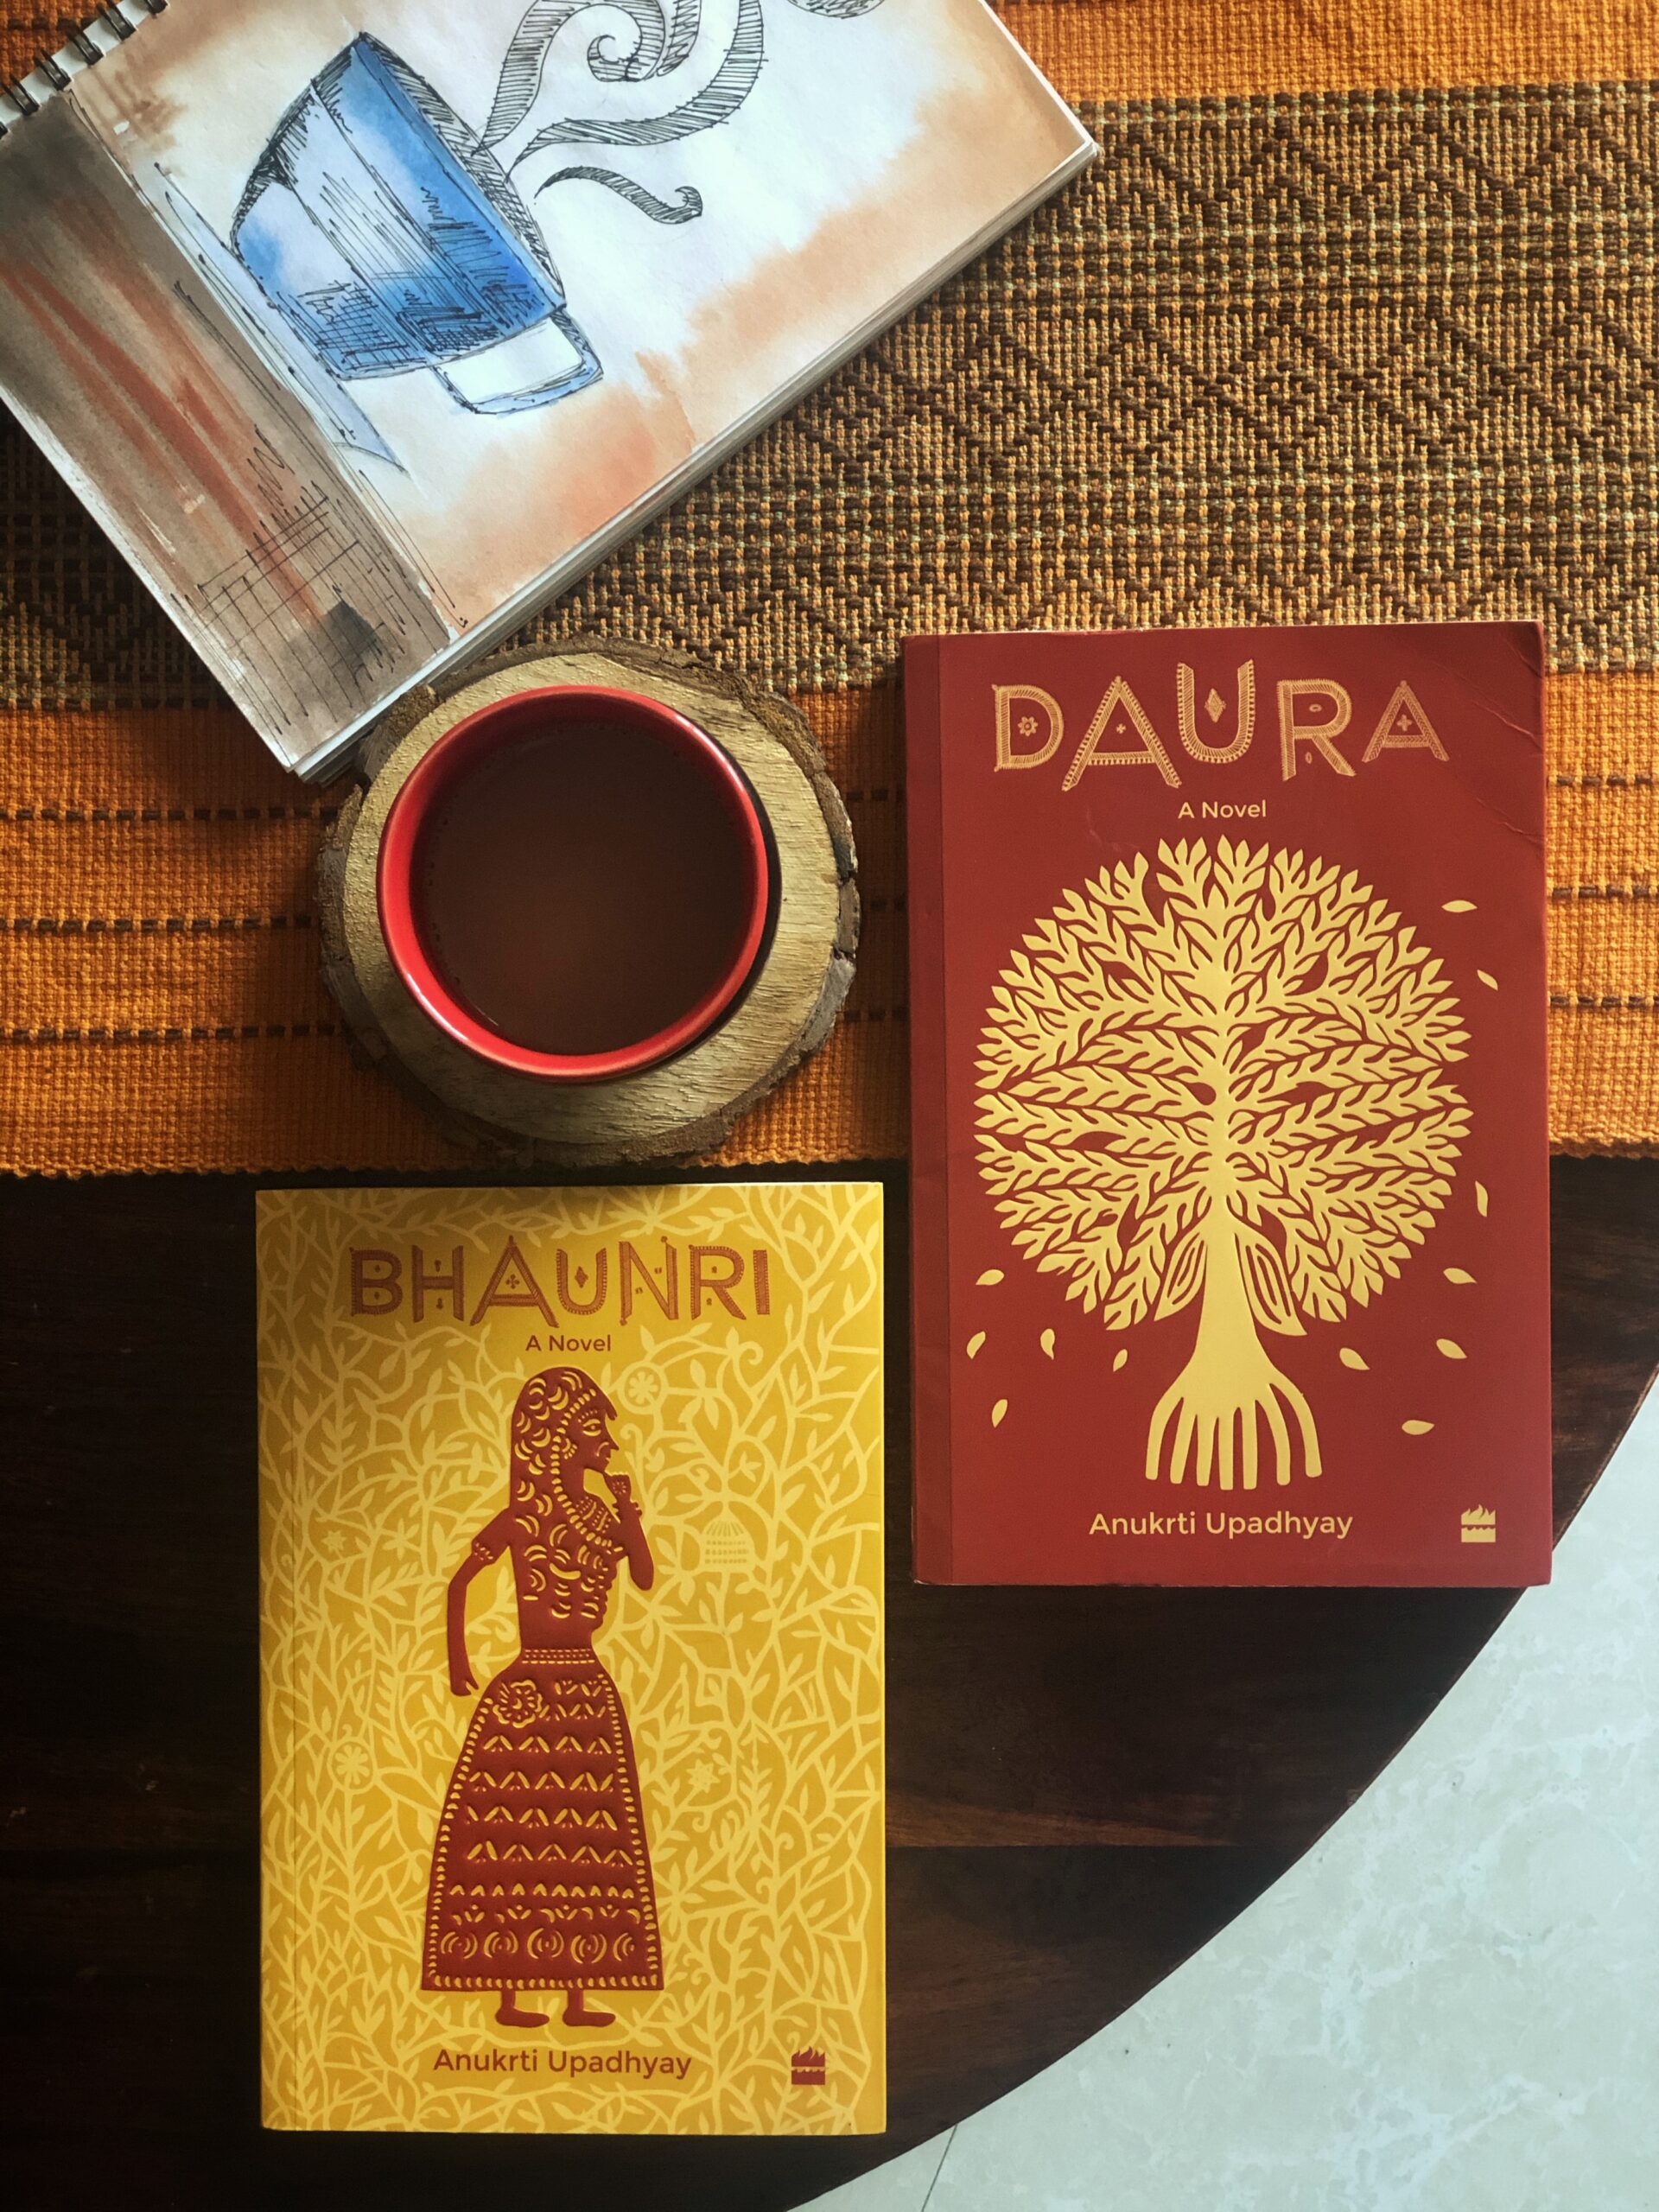 Book review of Bhaunri and Daura by Anukriti Upadhyay- magical fables from the state of Rajasthan